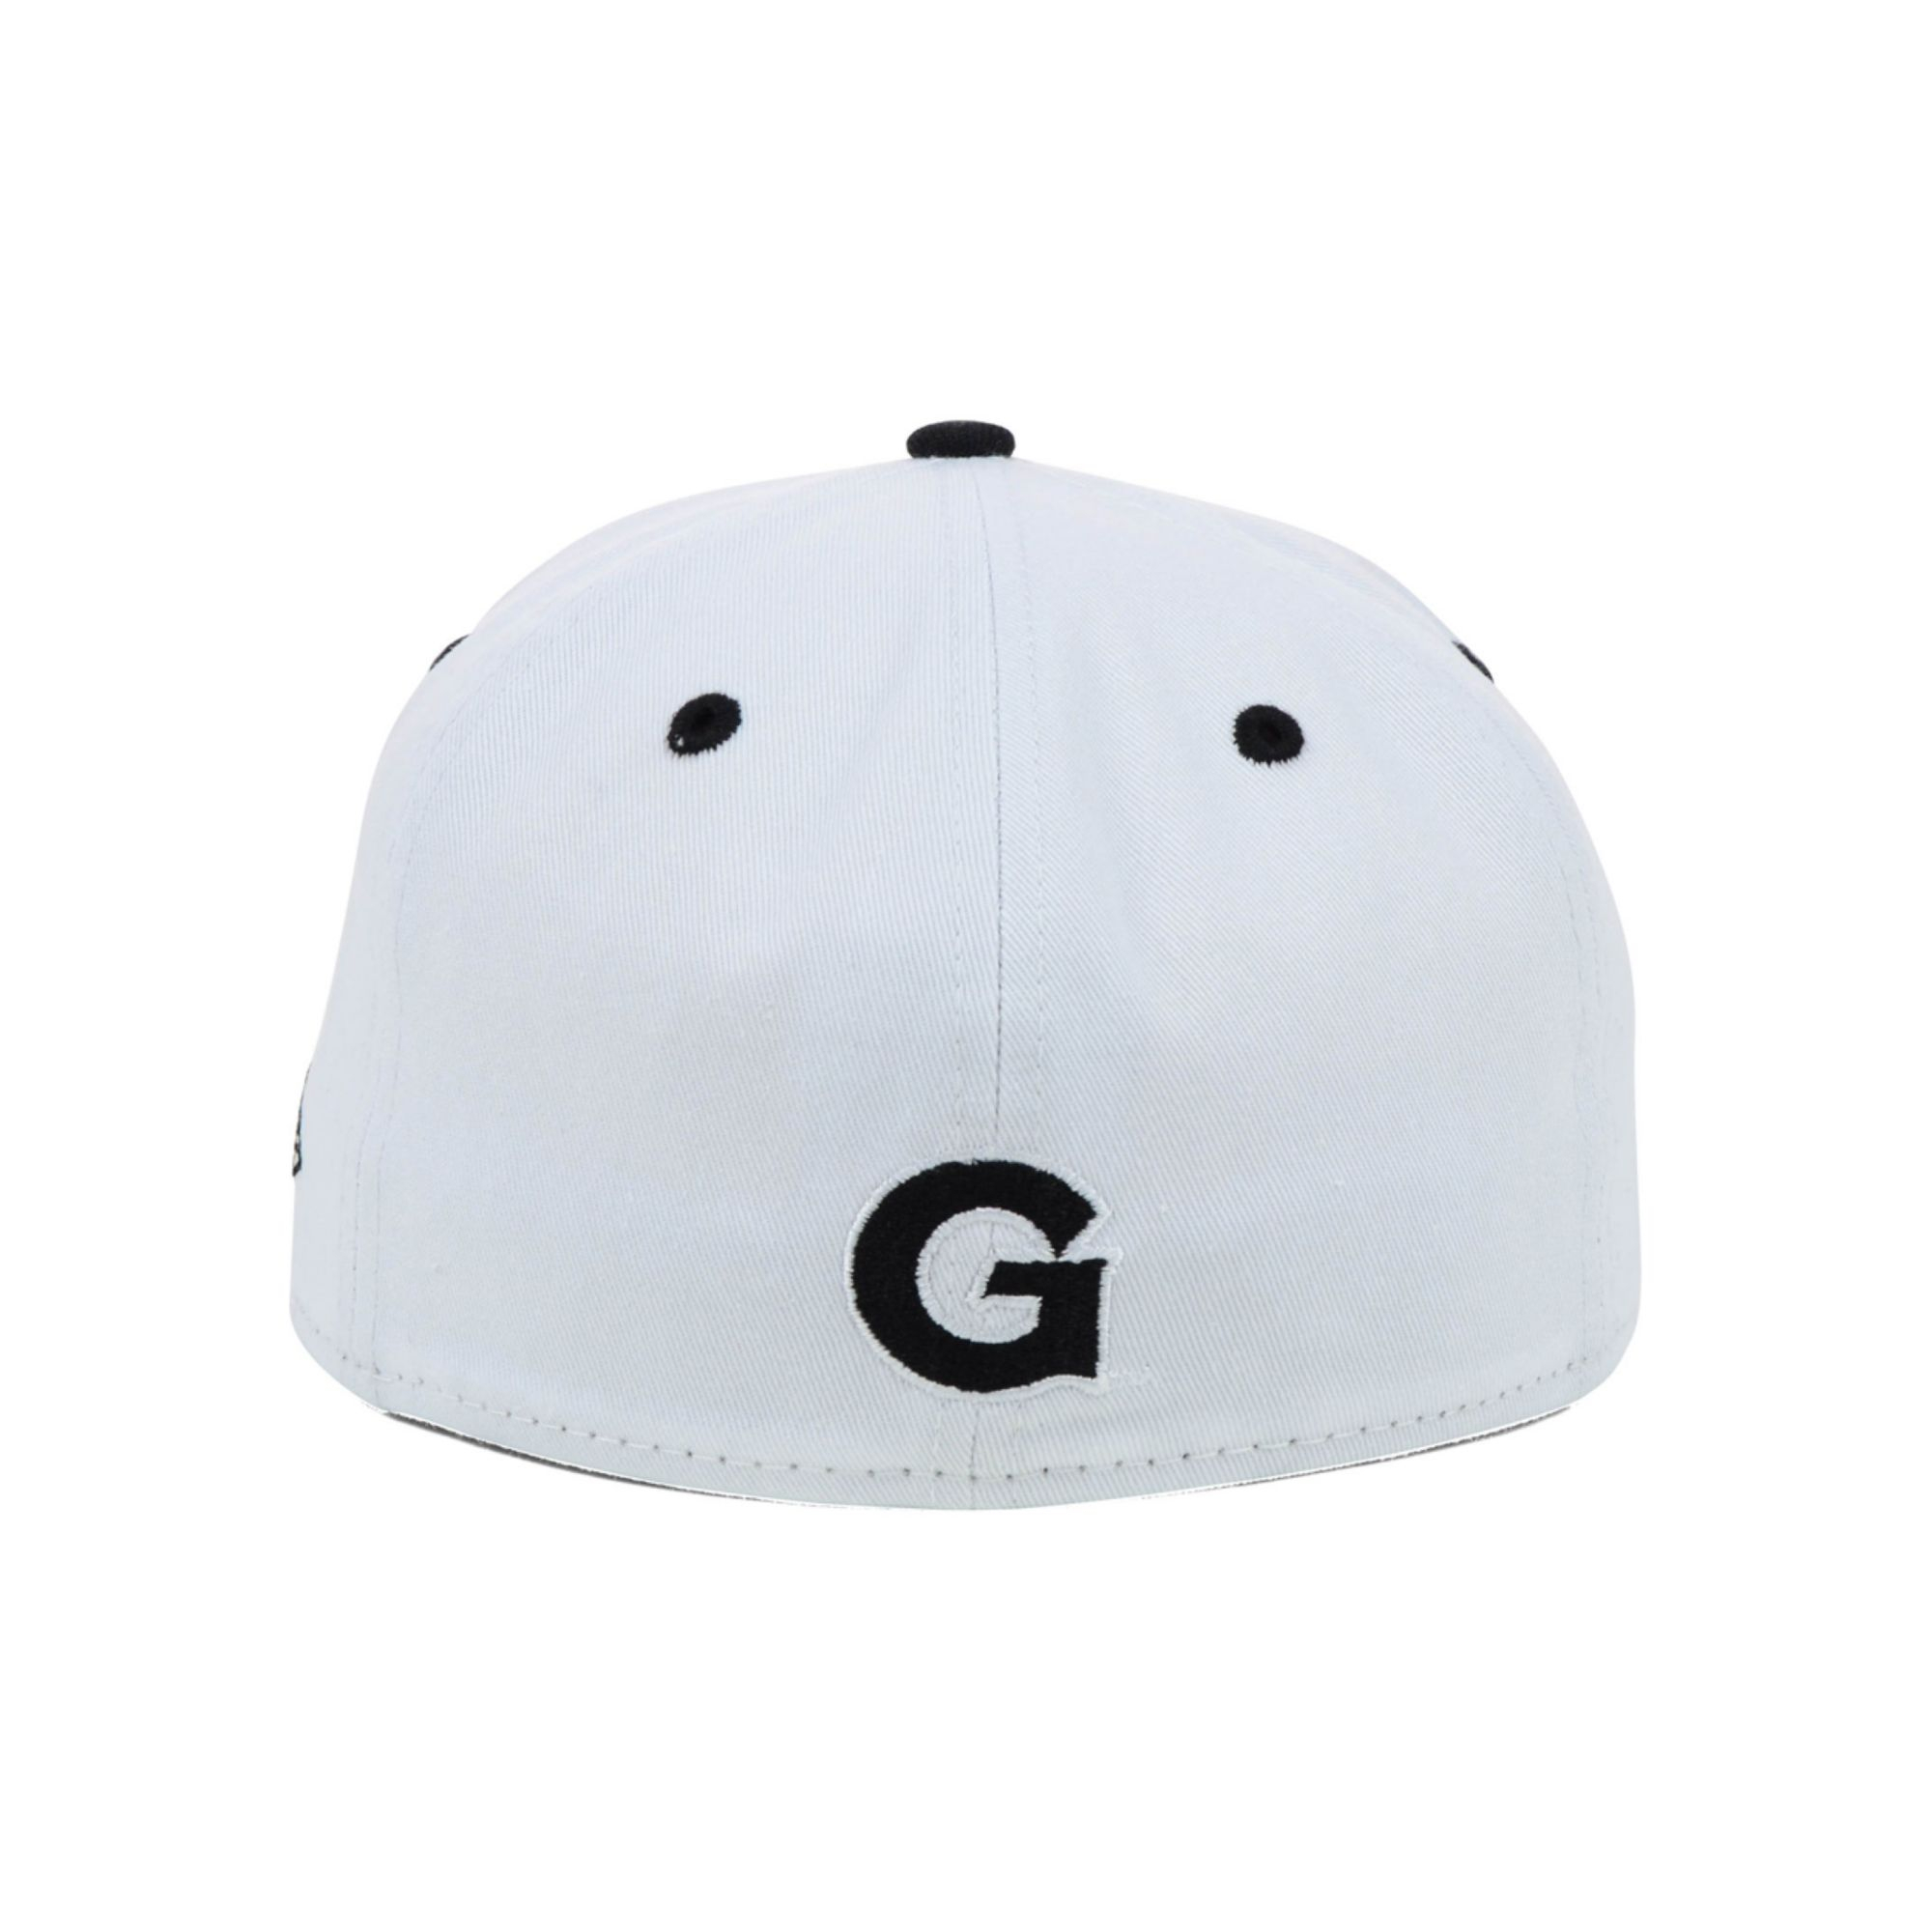 purchase cheap clearance prices new york low price georgetown hoyas new era ncaa ac 59fifty cap 2b83a f5d1e